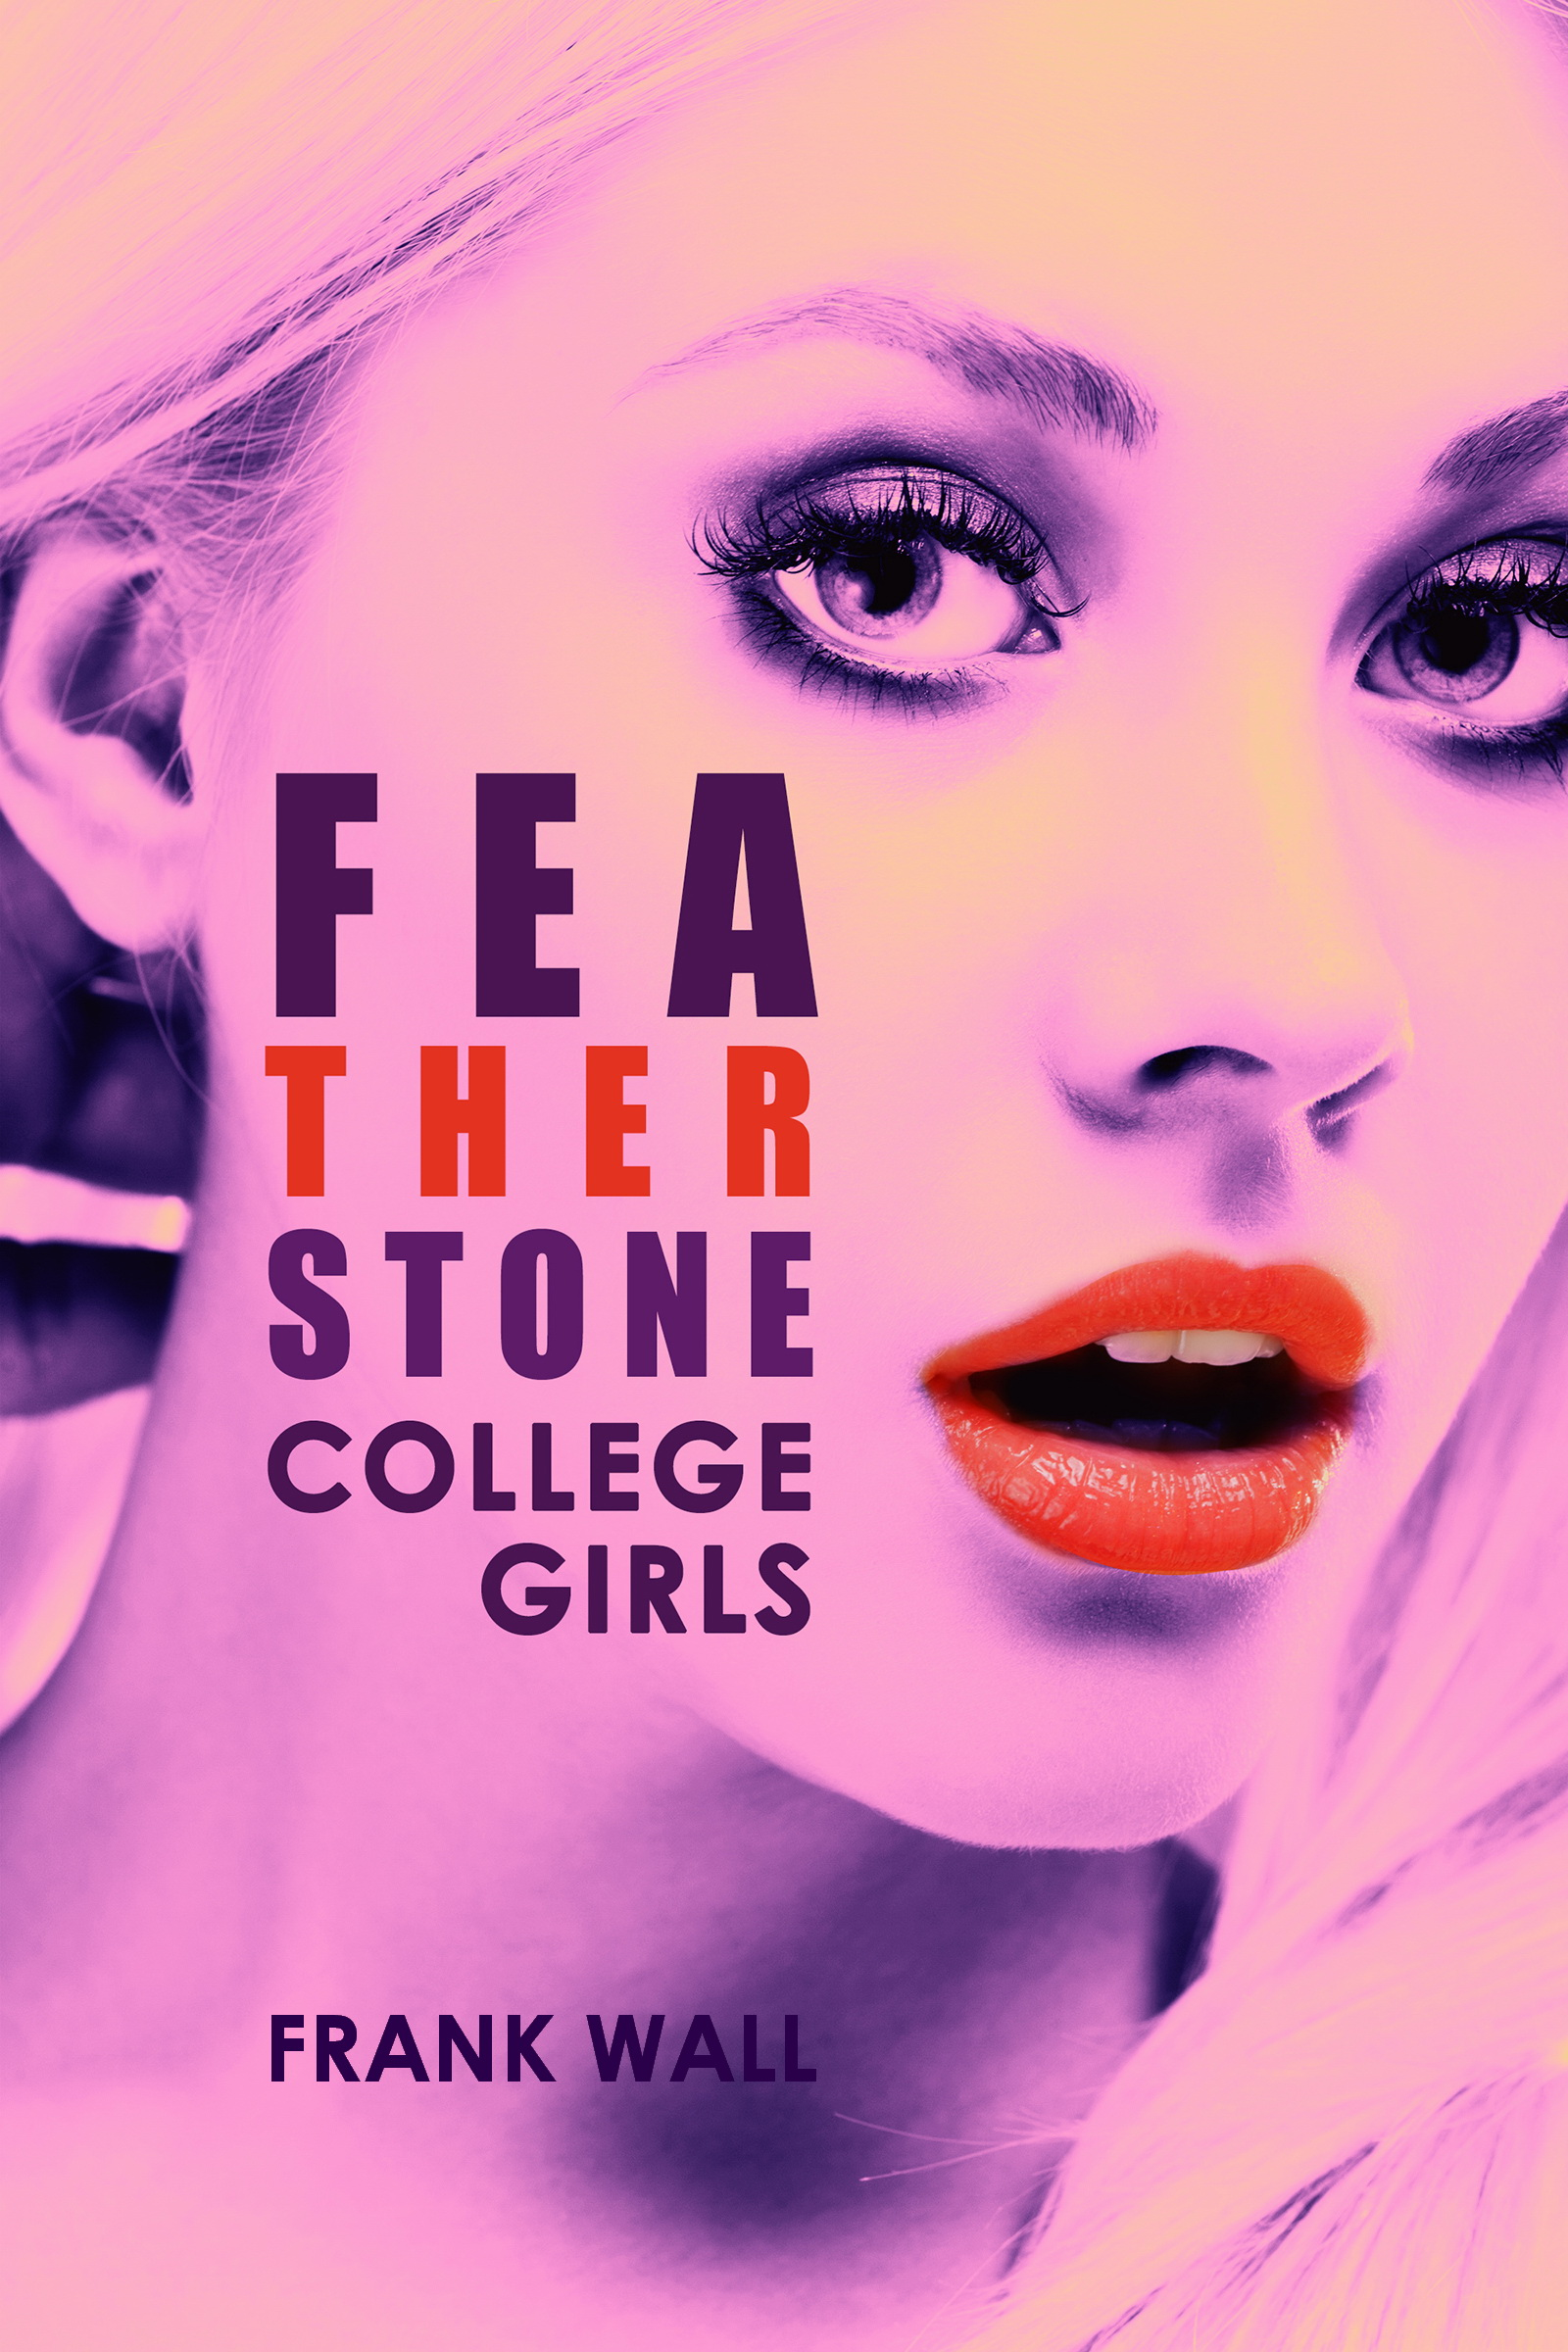 College Girls, an Ebook by Frank Wall